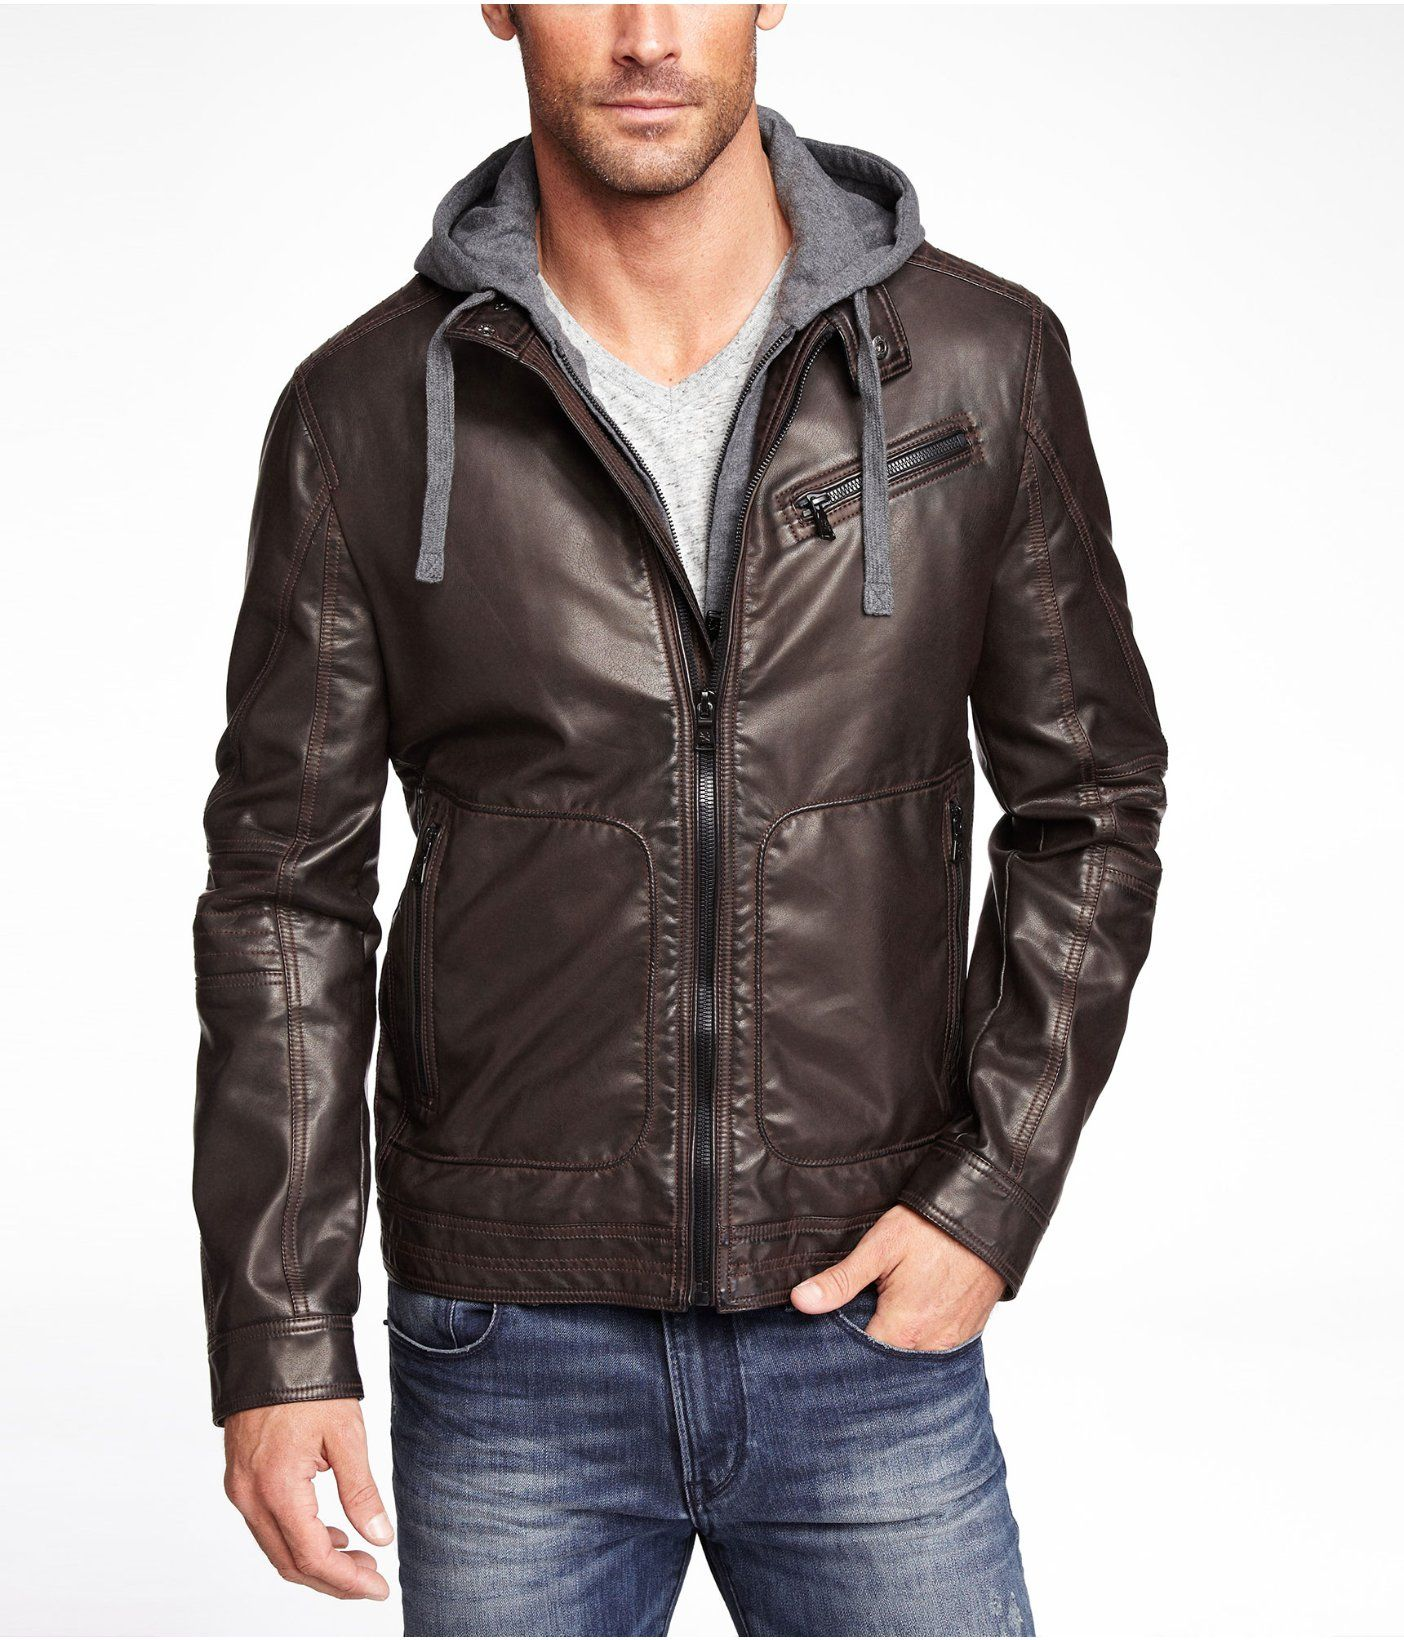 Minus The Leather Hooded System Jacket Express Leather Jacket Men Leather Jacket Mens Jackets [ 1640 x 1404 Pixel ]